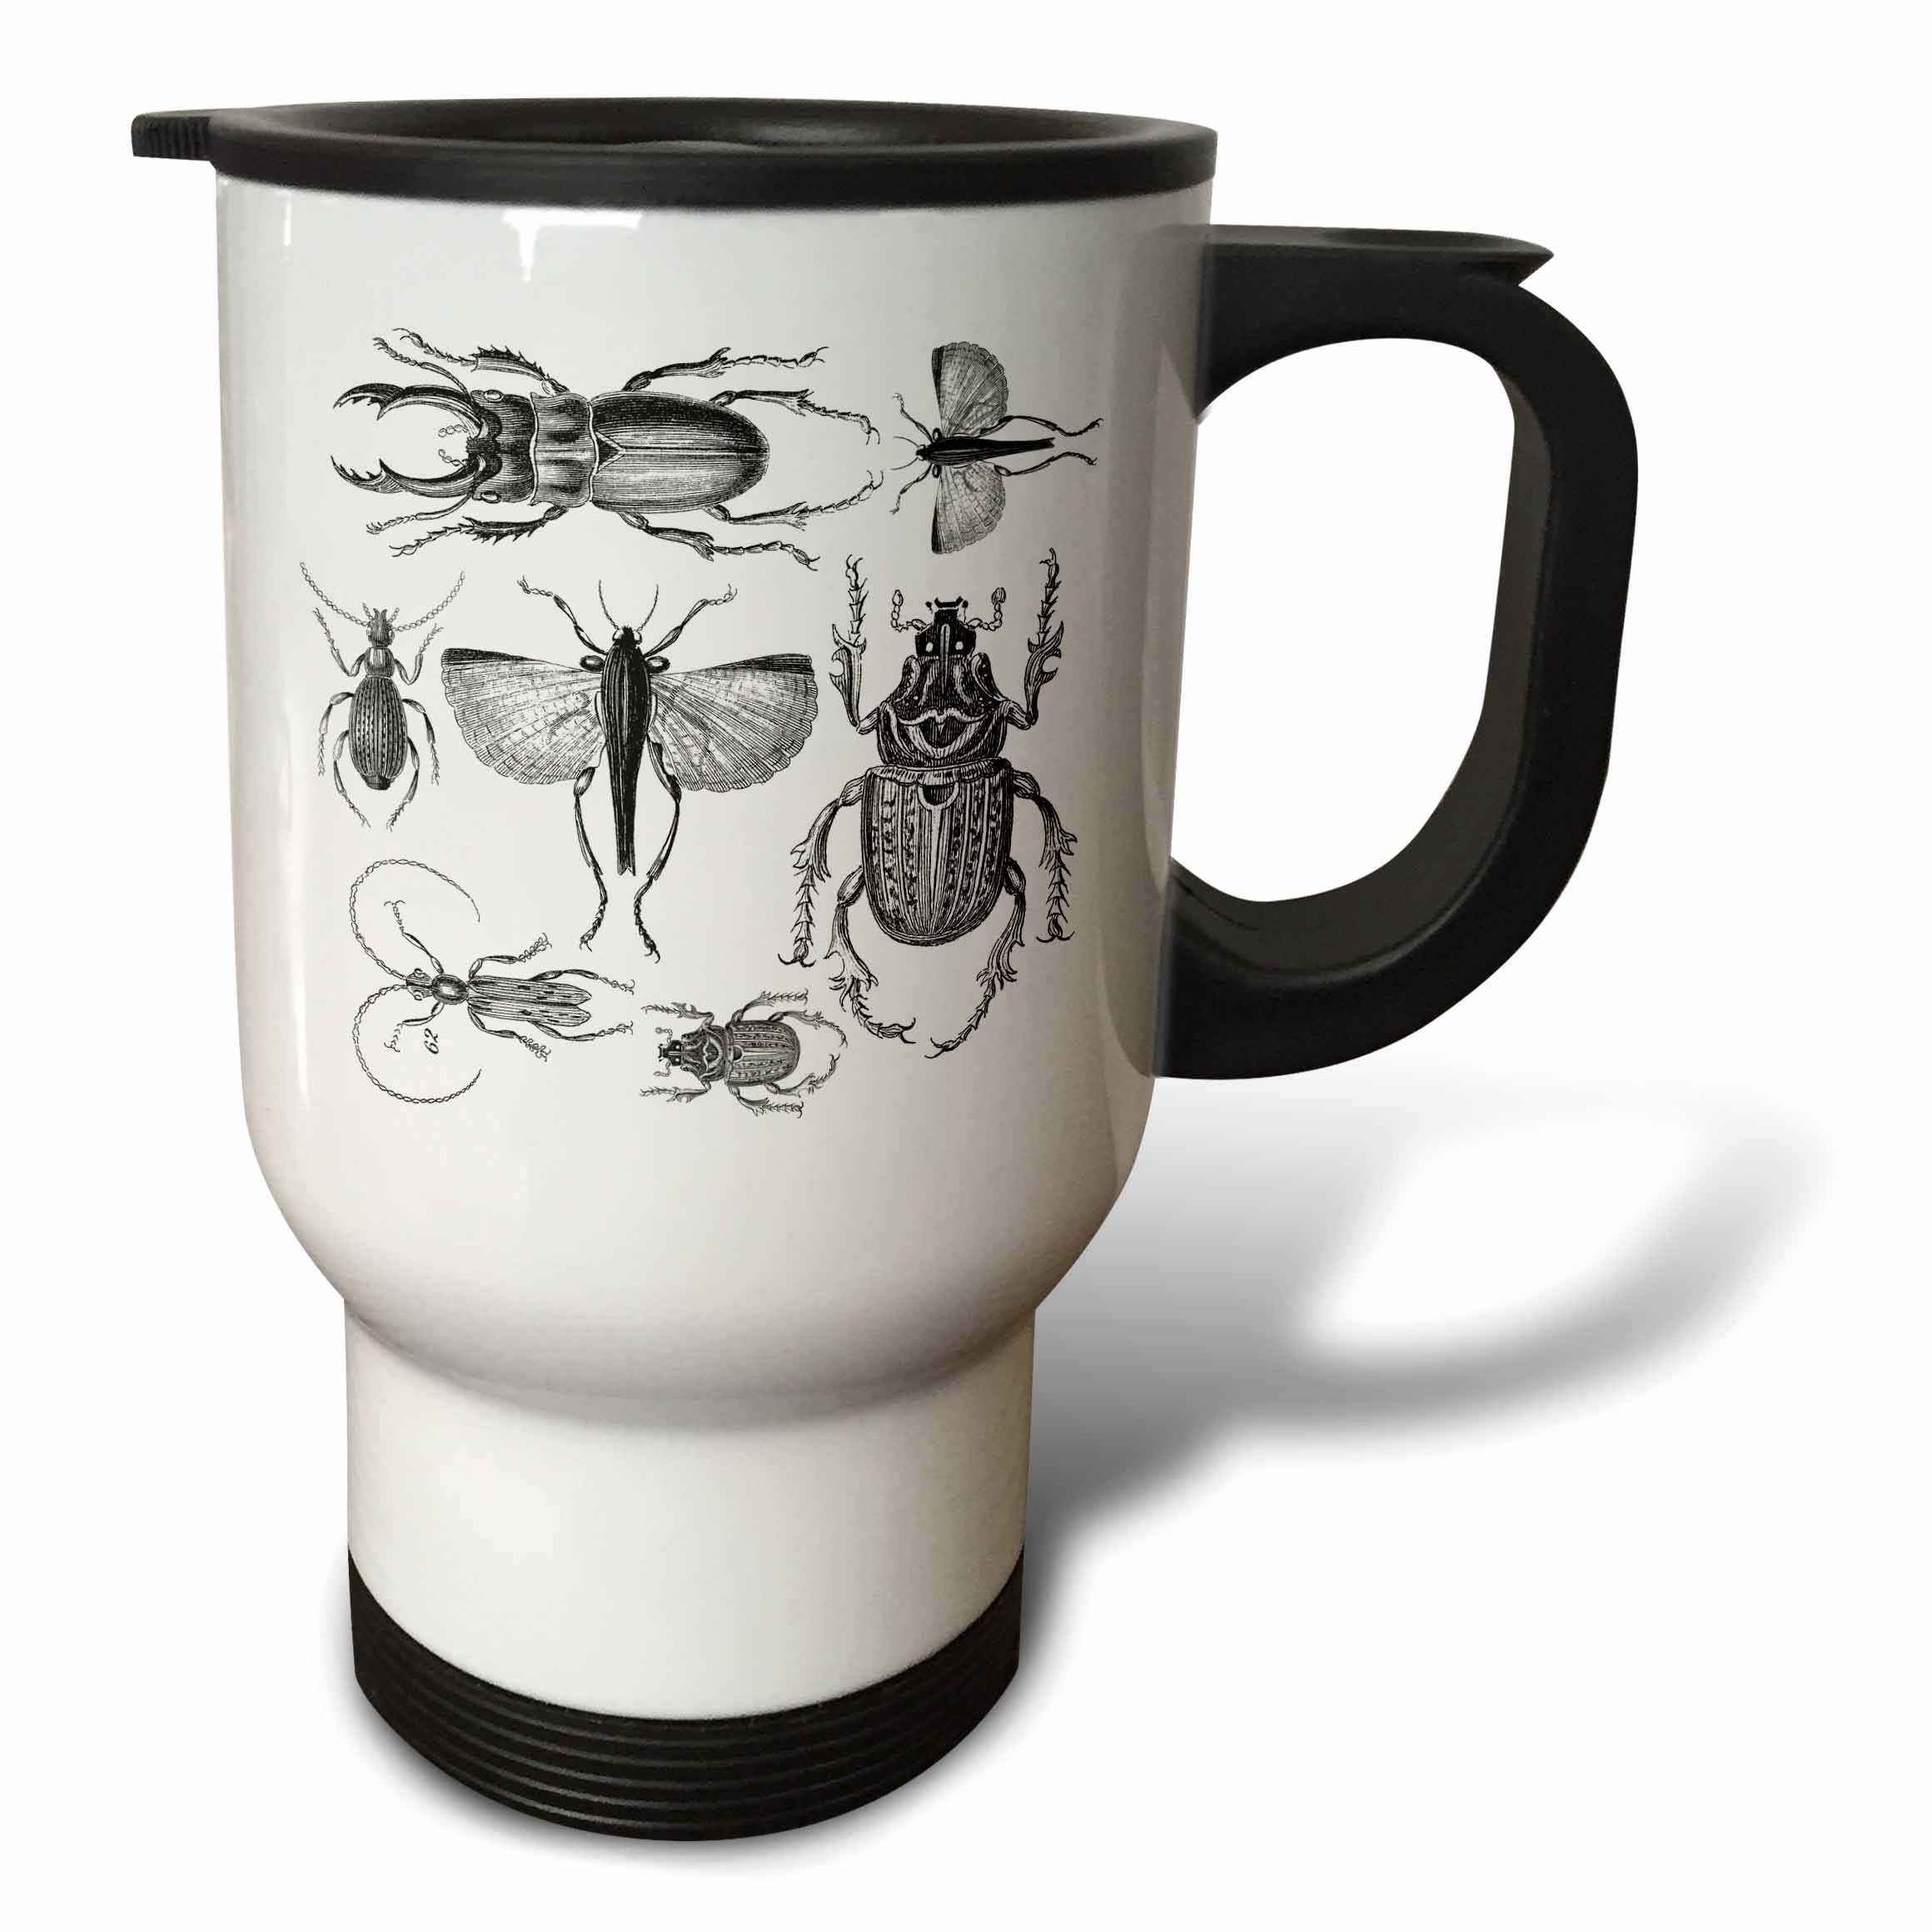 3dRose Andrea Haase Animals Illustration - Vintage drawing of bugs and beetles in black and white - 14oz Stainless Steel Travel Mug (tm_264735_1)